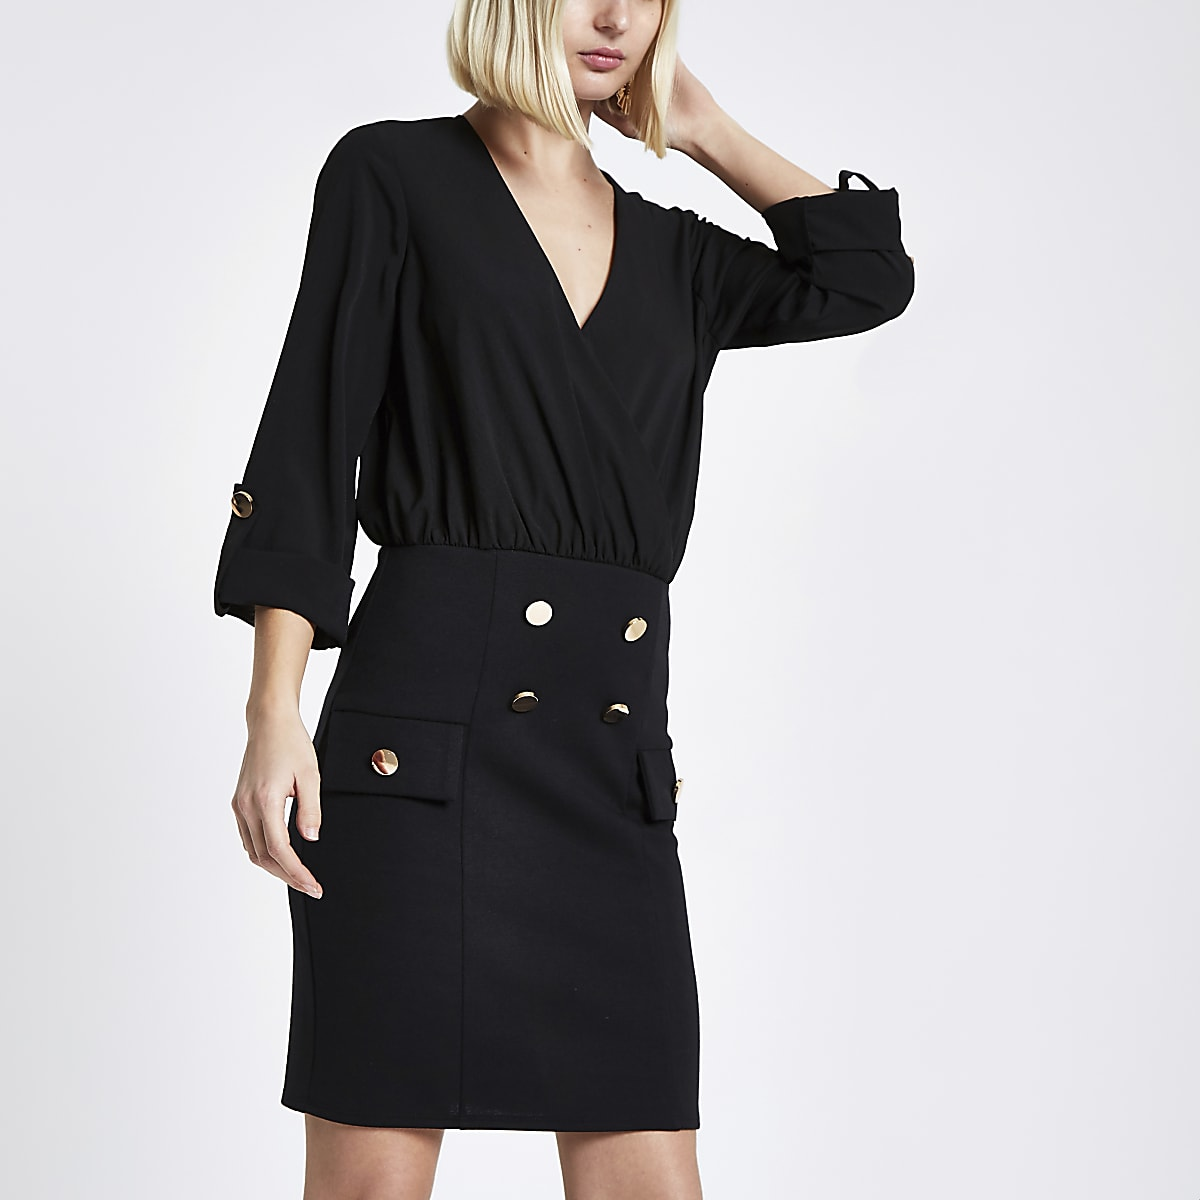 Black shirt and button mini dress